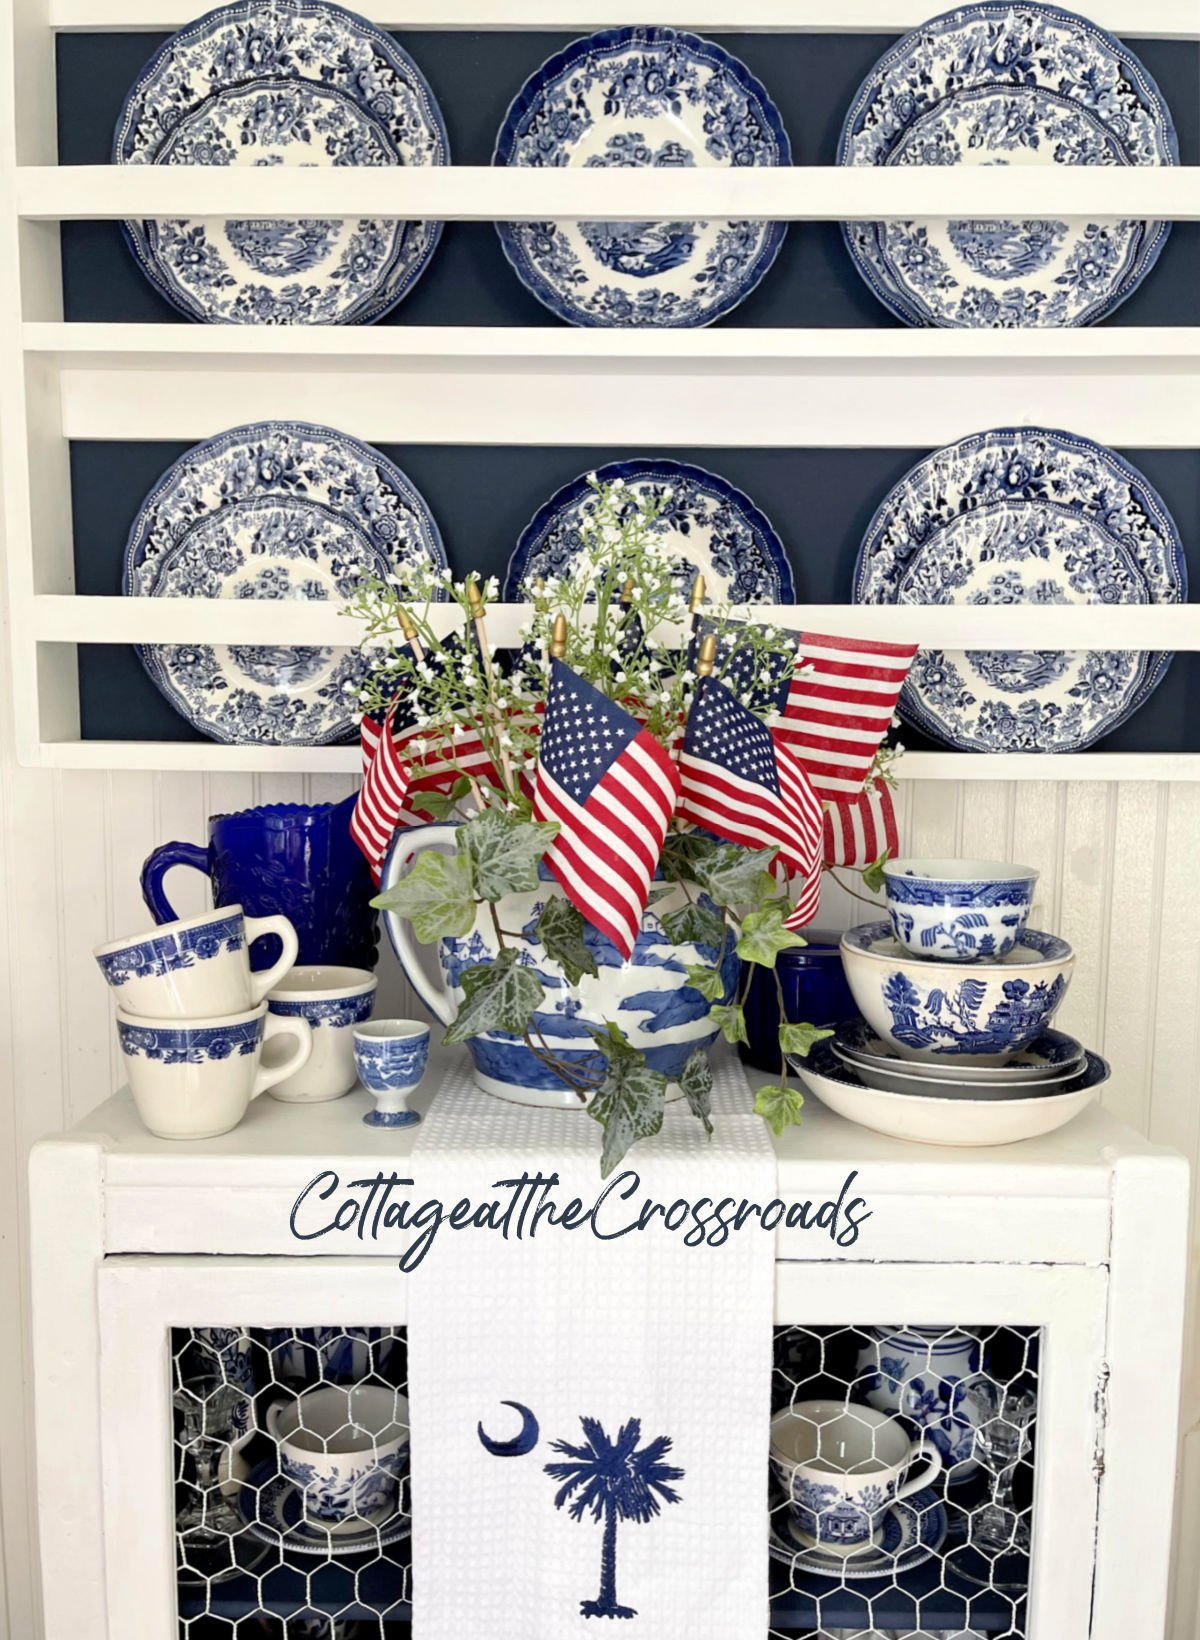 blue and white china displayed in a wooden plate rack with flags tucked down inside a jar